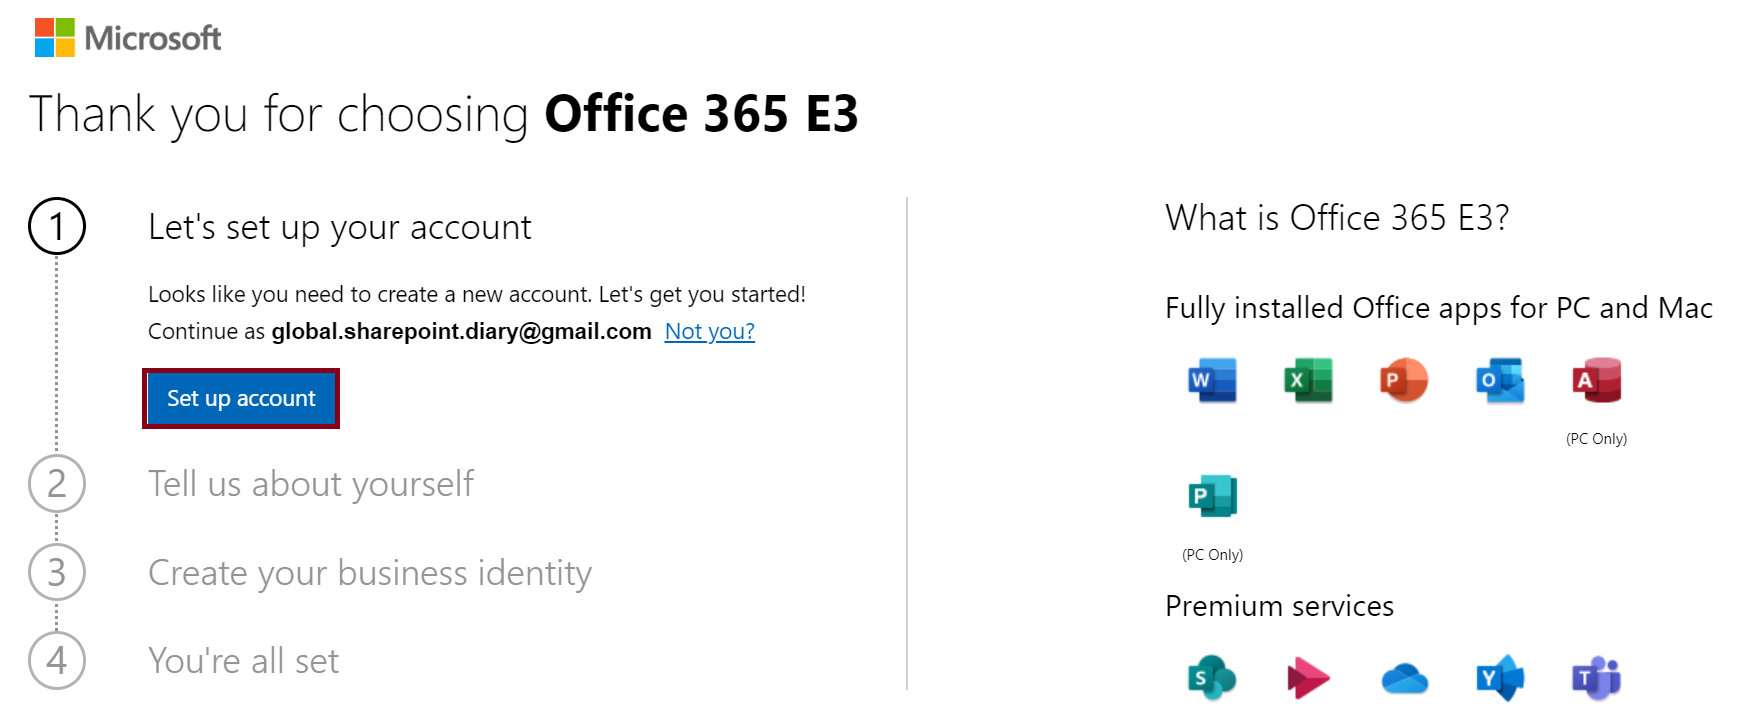 Office 365 E3 Trial - Set up account